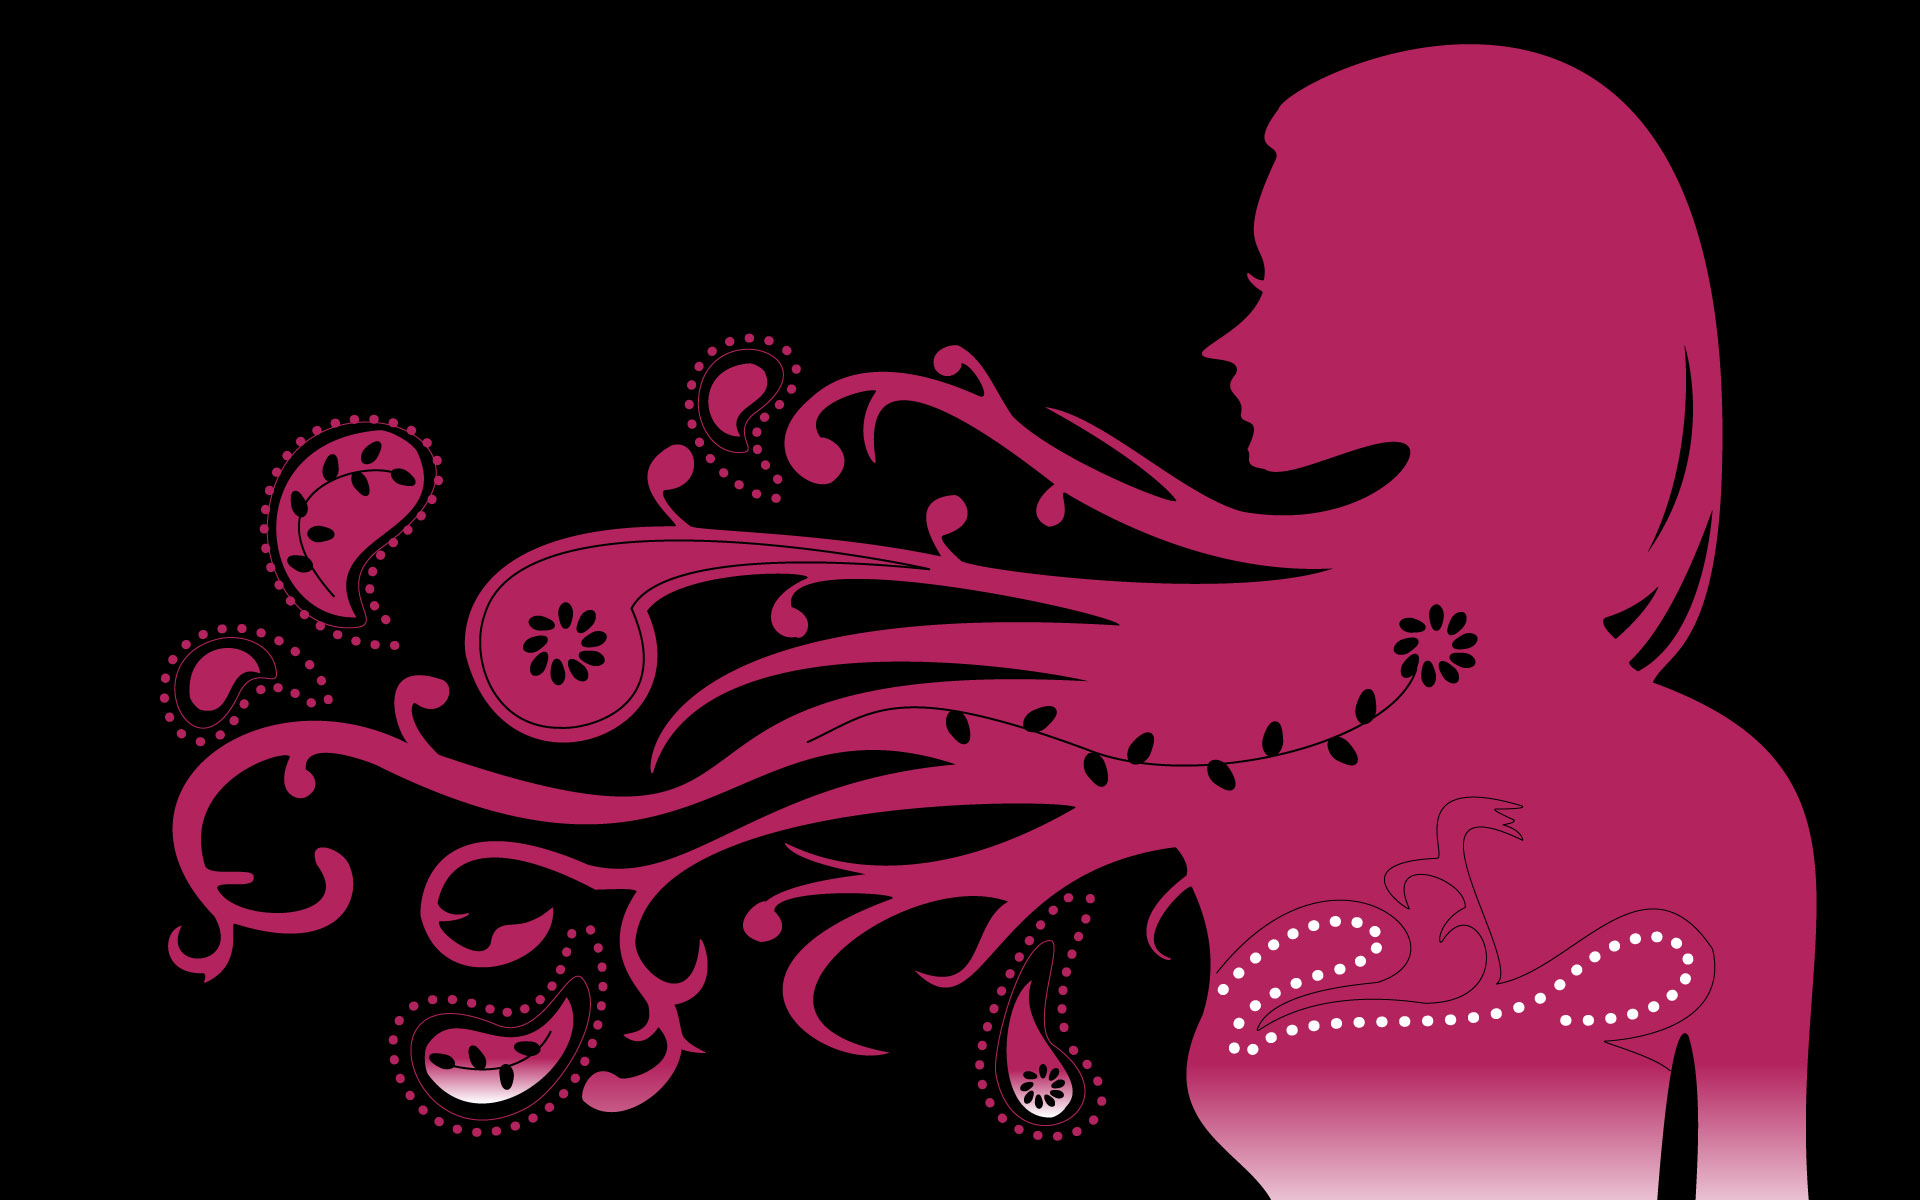 Abstract Psychedelic Girl Pink - Abstract Psychedelic Girl Pink